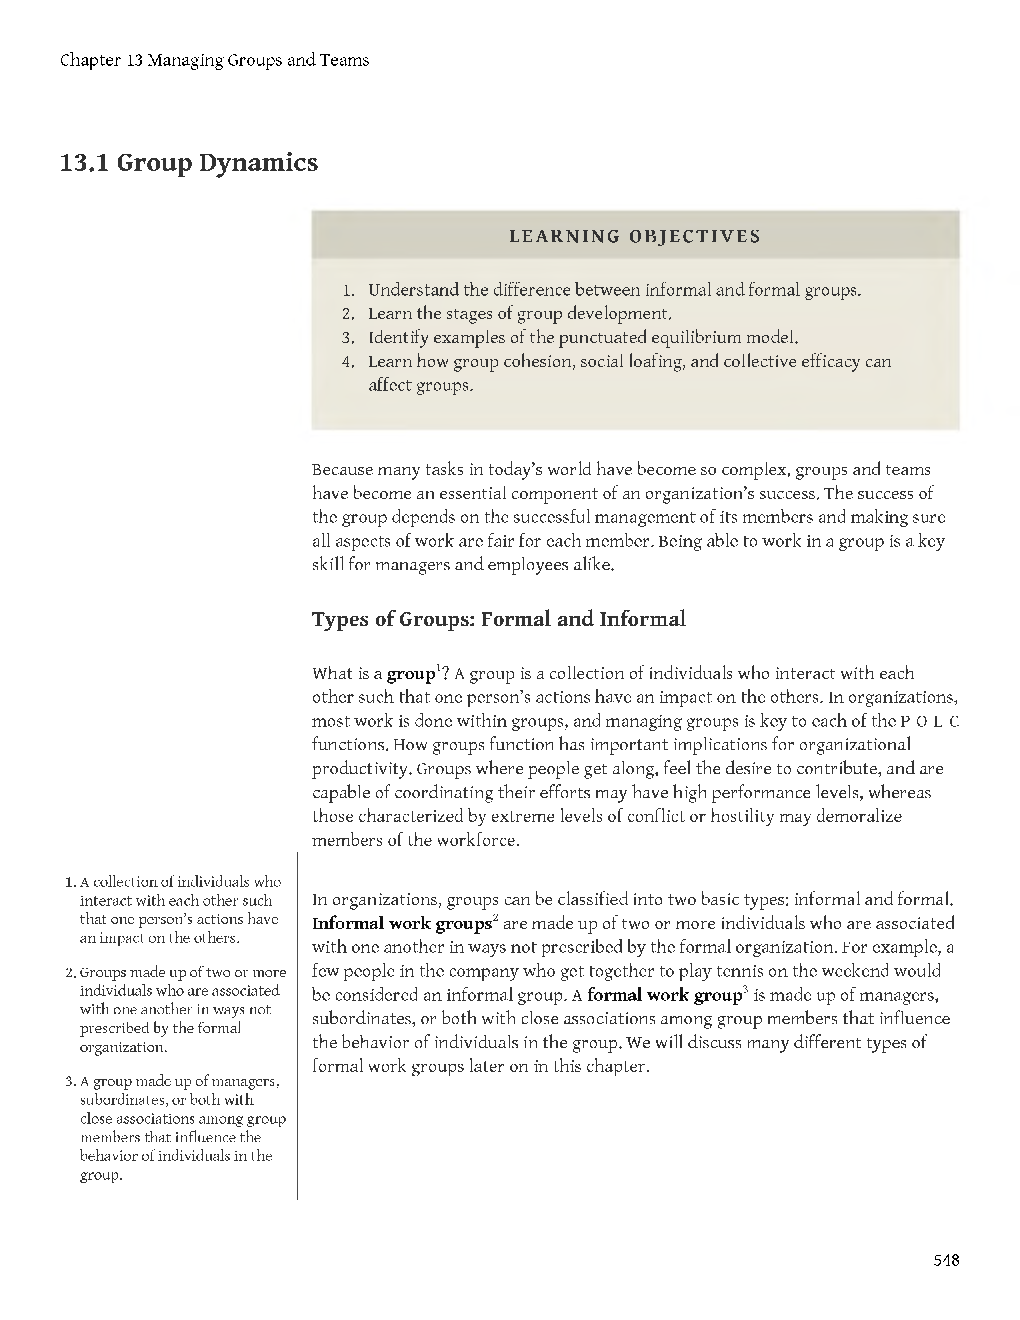 UGC NET Managing Groups And Teams Study Material For Management - Page 4